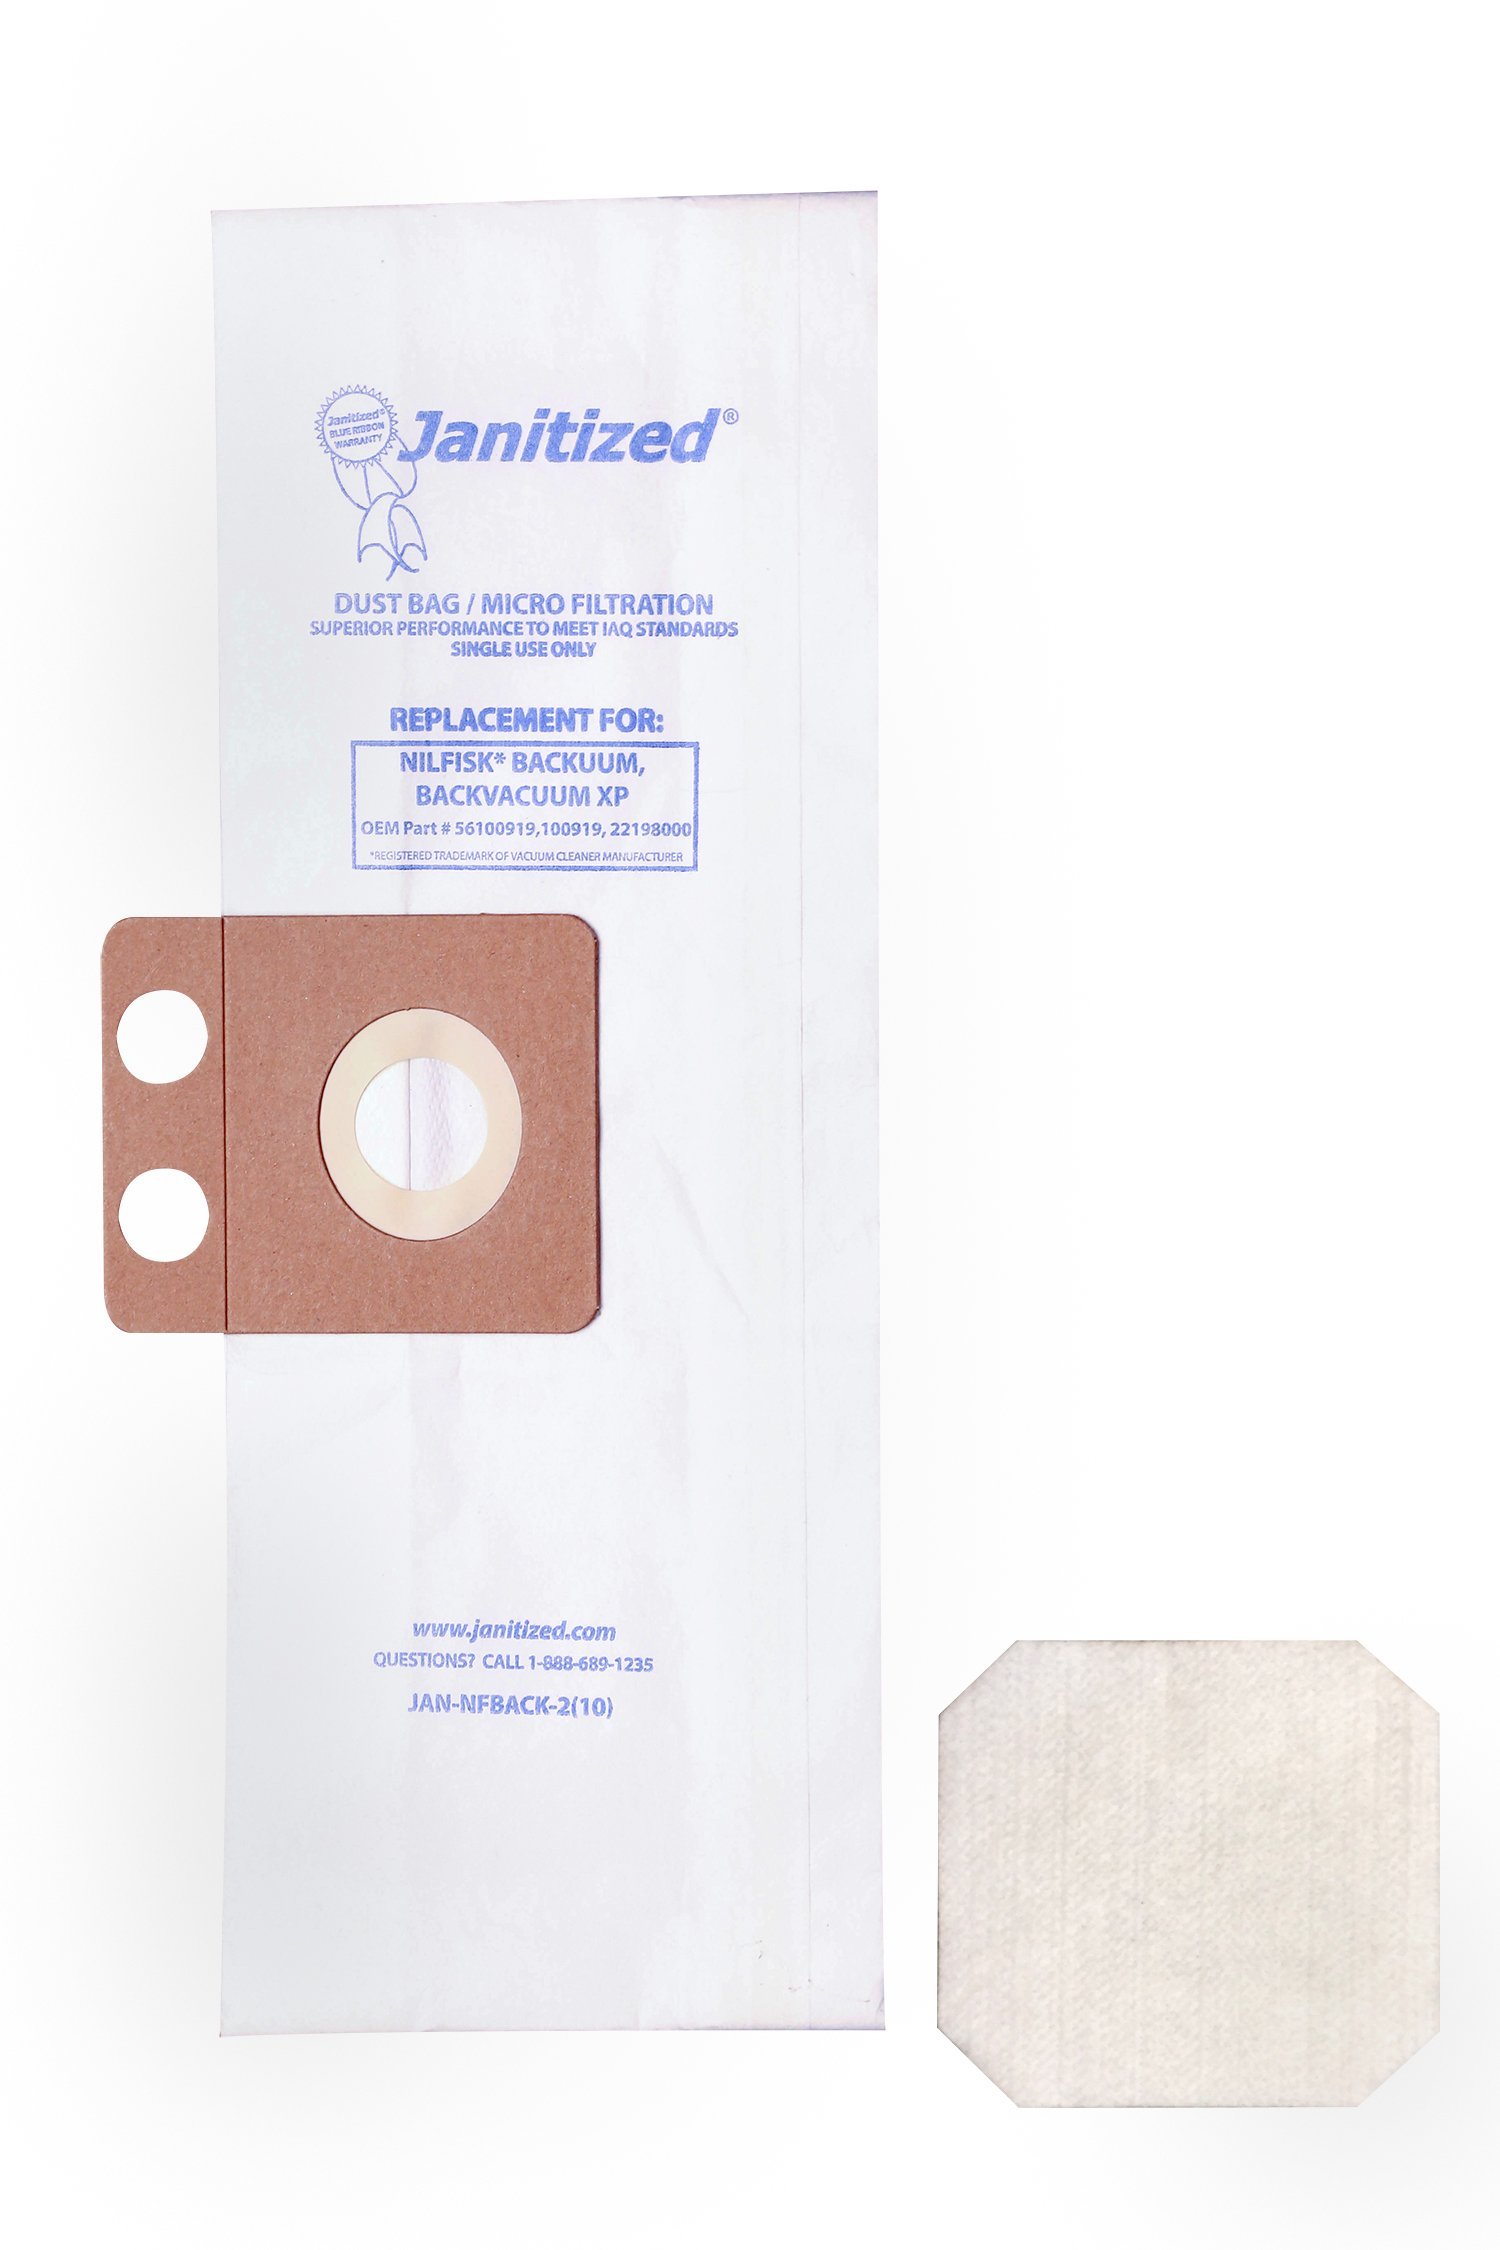 Janitized JAN-NFBACK-2(10) Premium Replacement Commercial Vacuum Paper Bag for Nilfisk Backuum and Back Pack XP, Includes 2 Pre-Filters, OEM#56100919, 100919, 22198000 (Pack of 10)